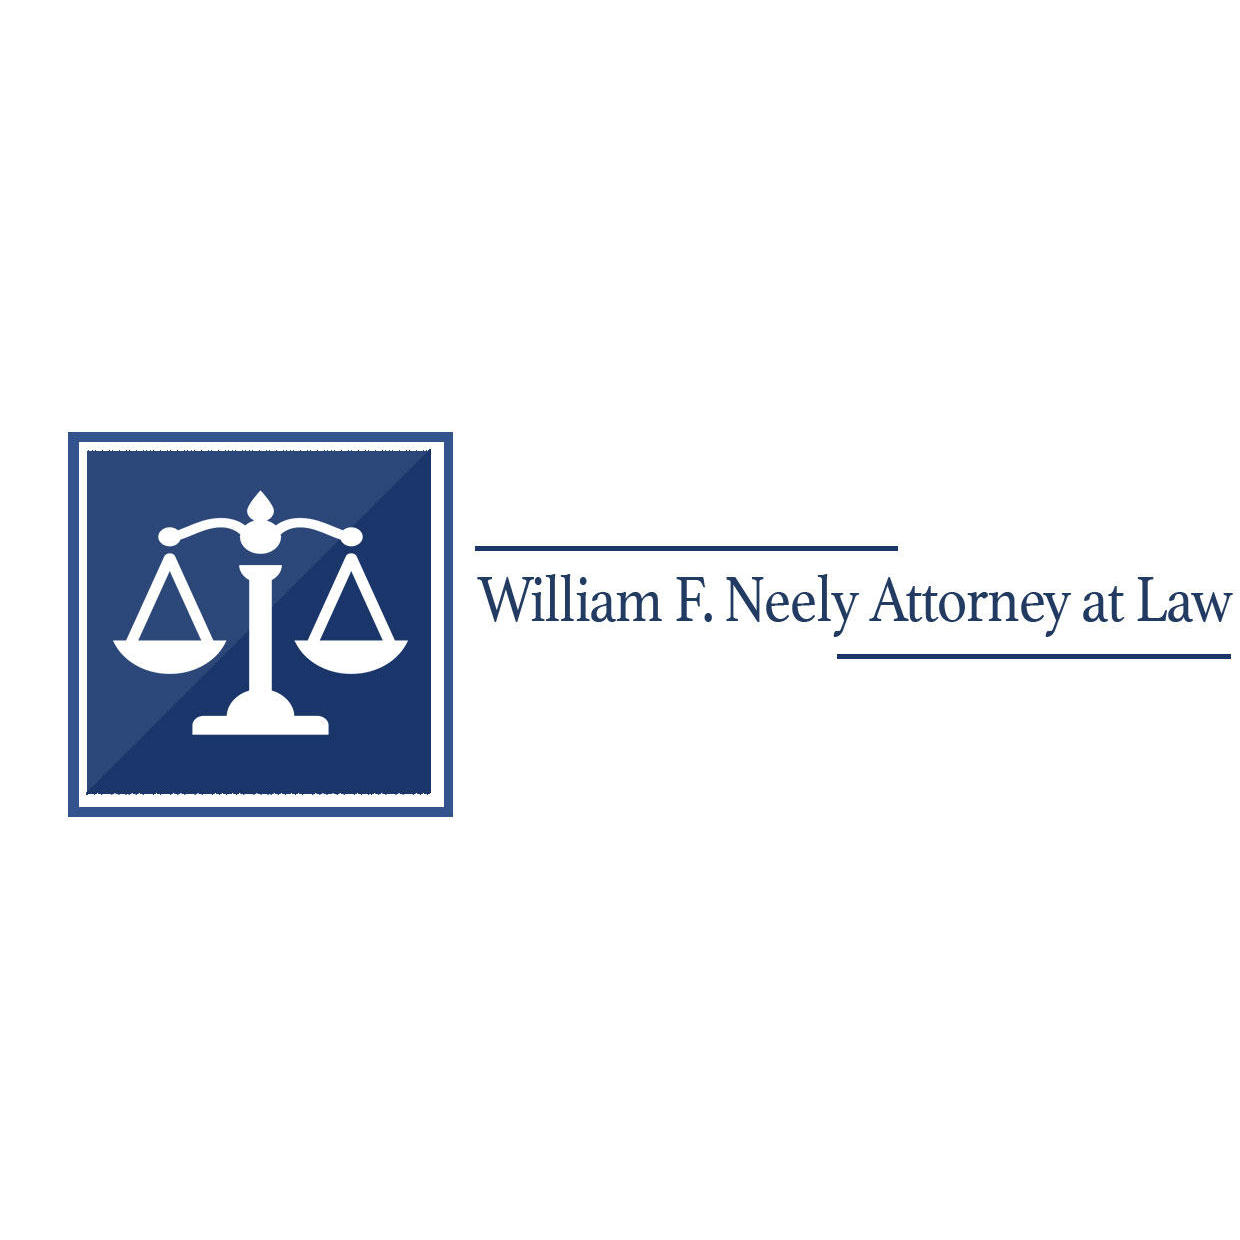 William F. Neely Attorney at Law